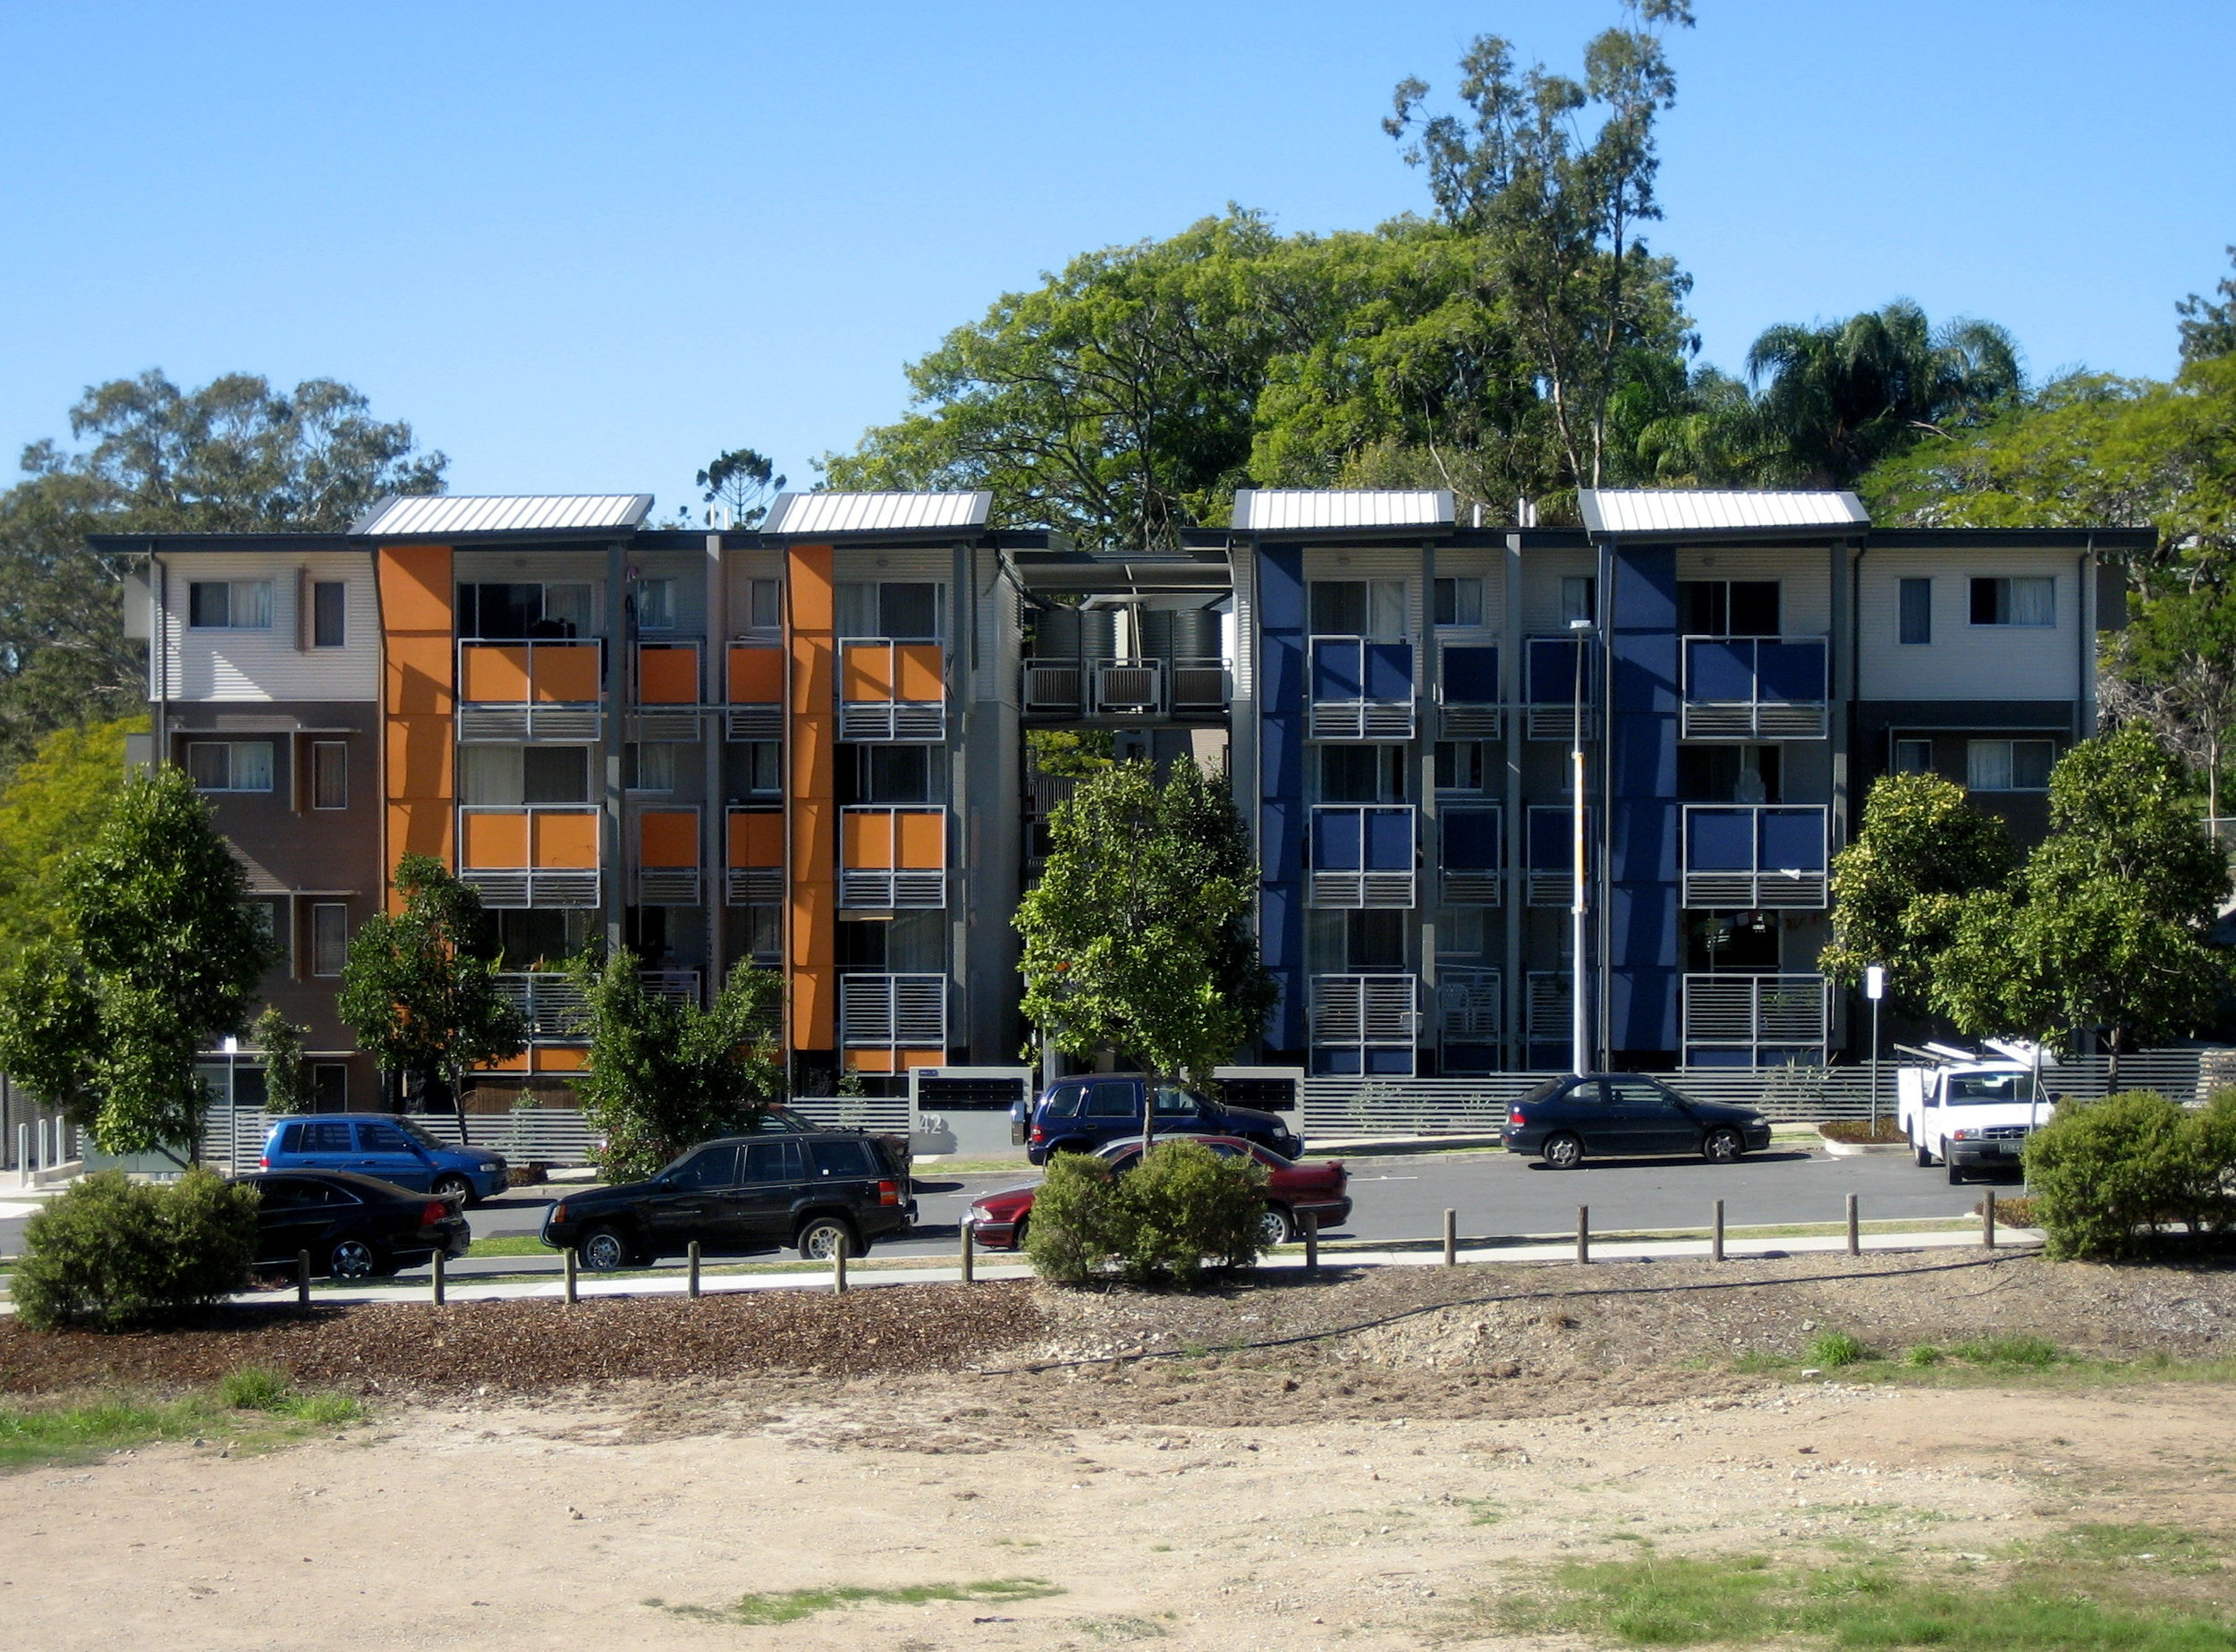 Affordable housing by BHC (Brisbane Housing Company)